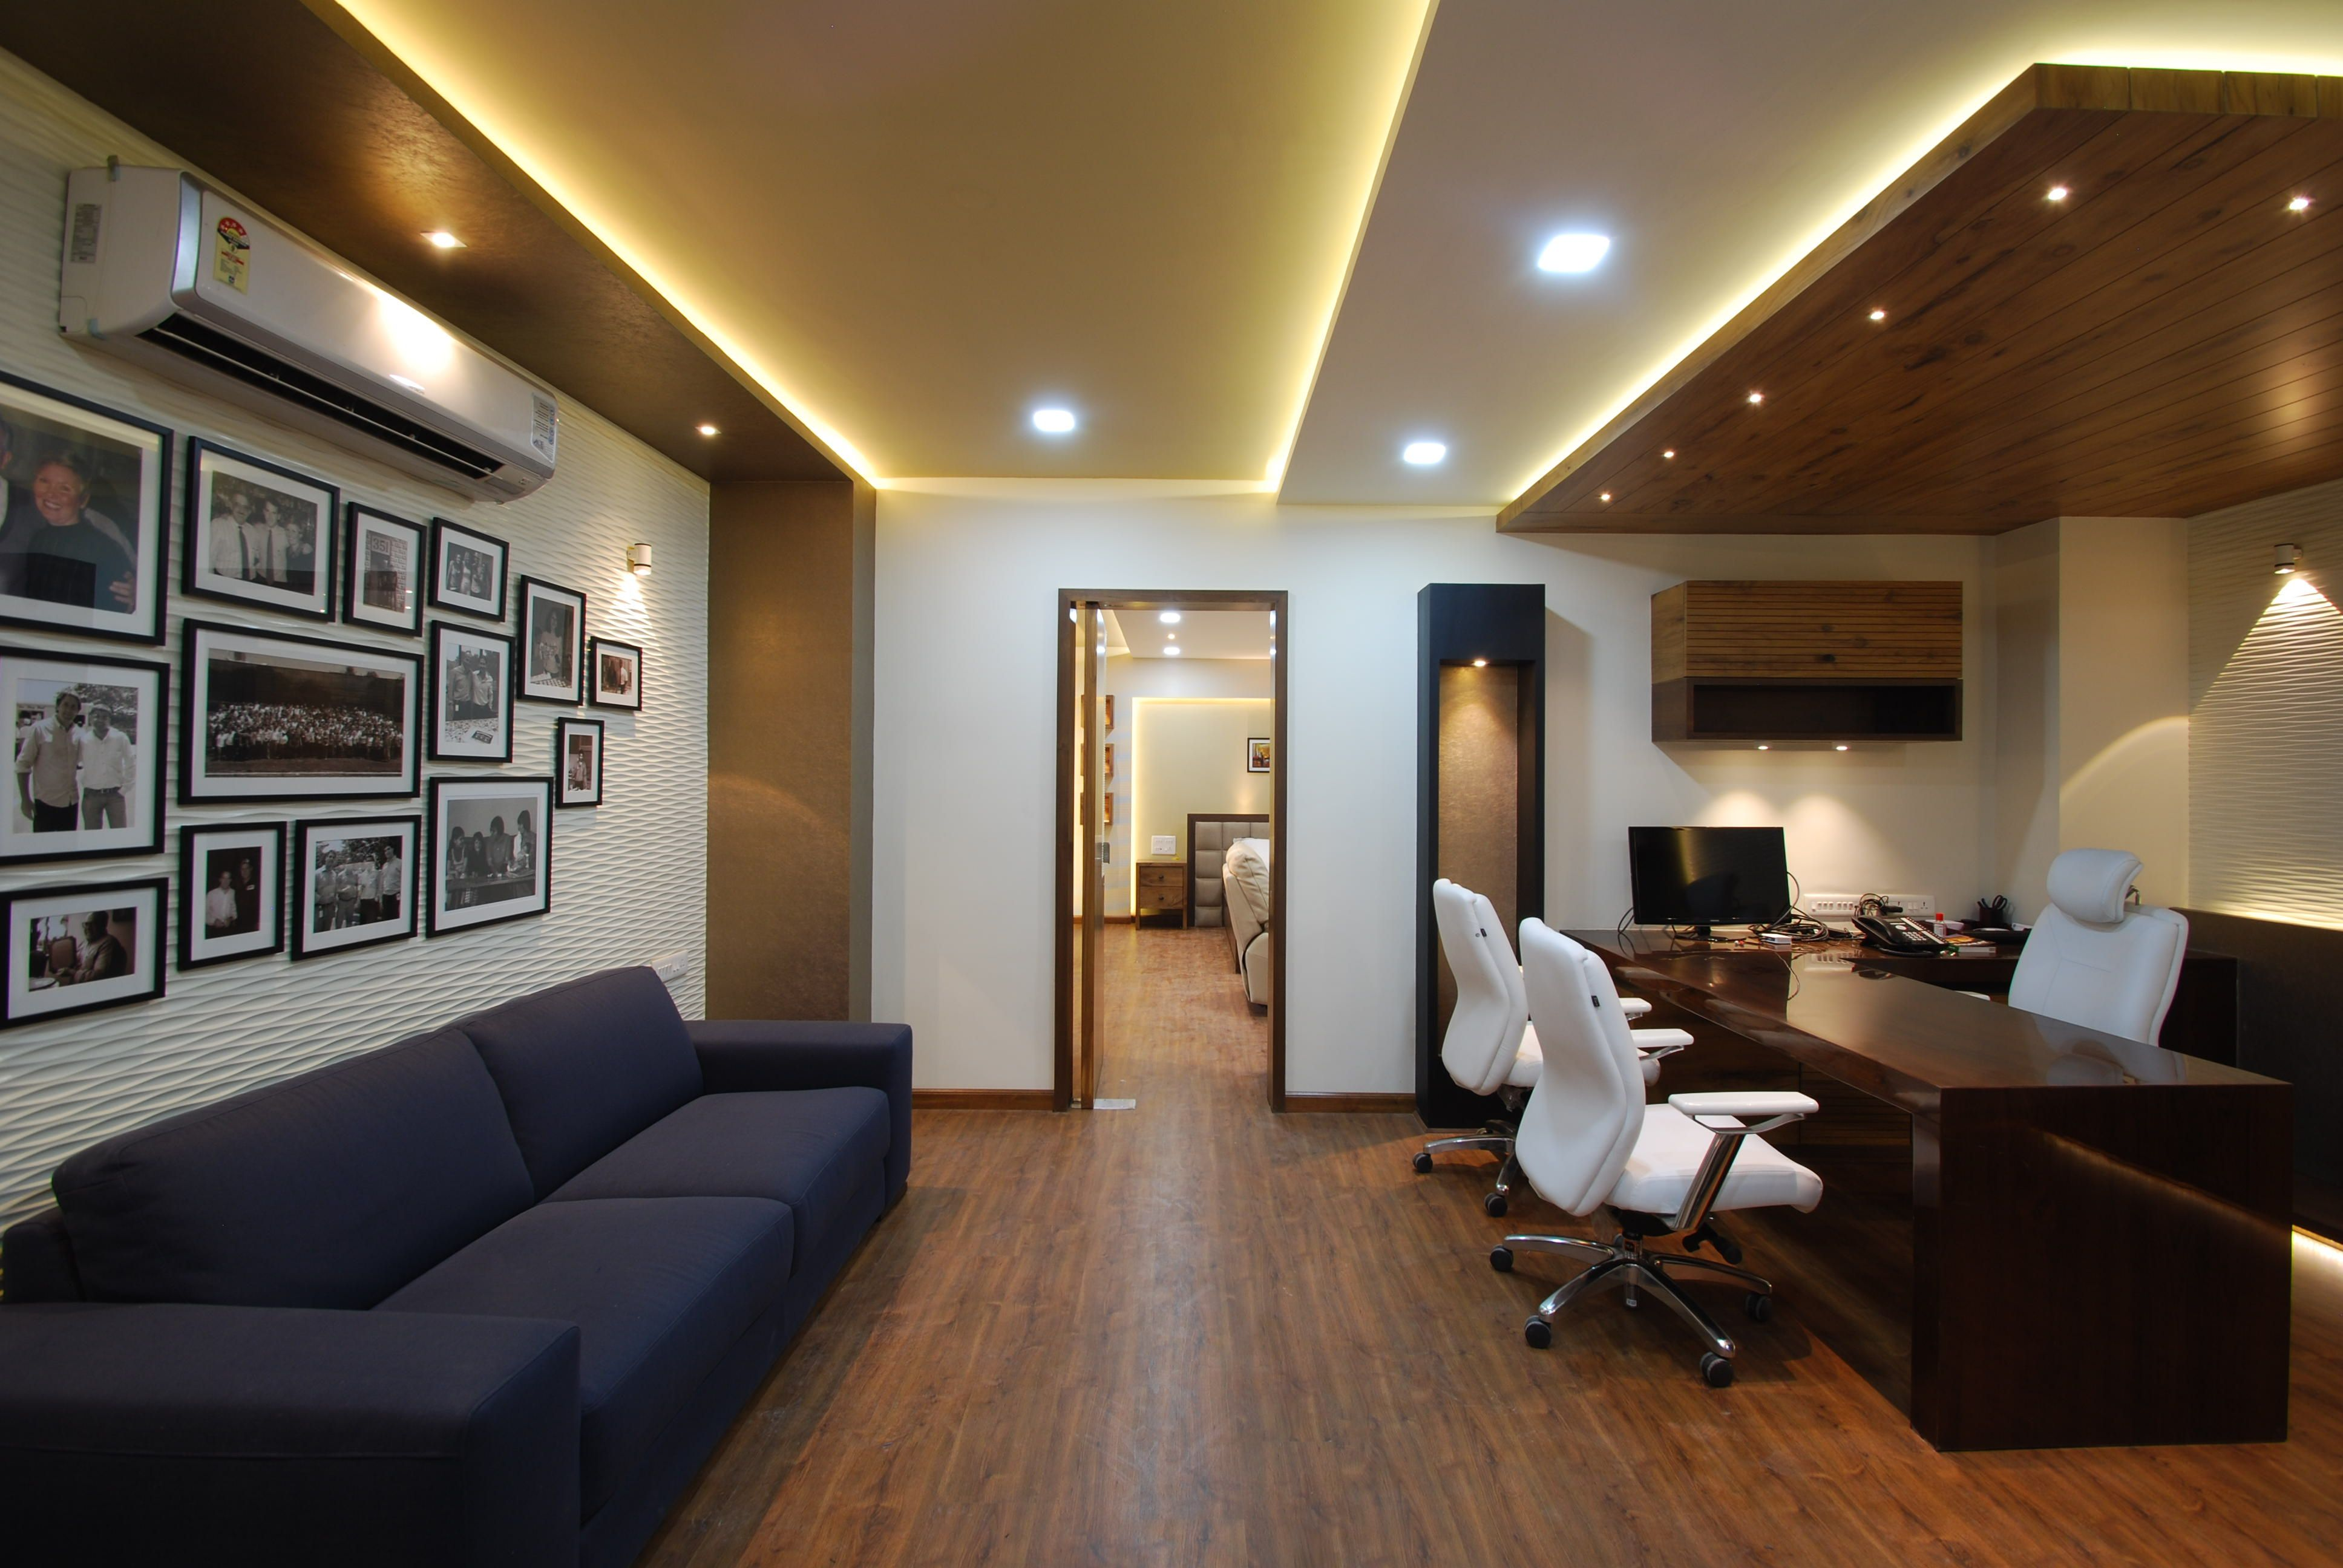 Cpc office interior design by maulik vyas architects for Office cabin interior